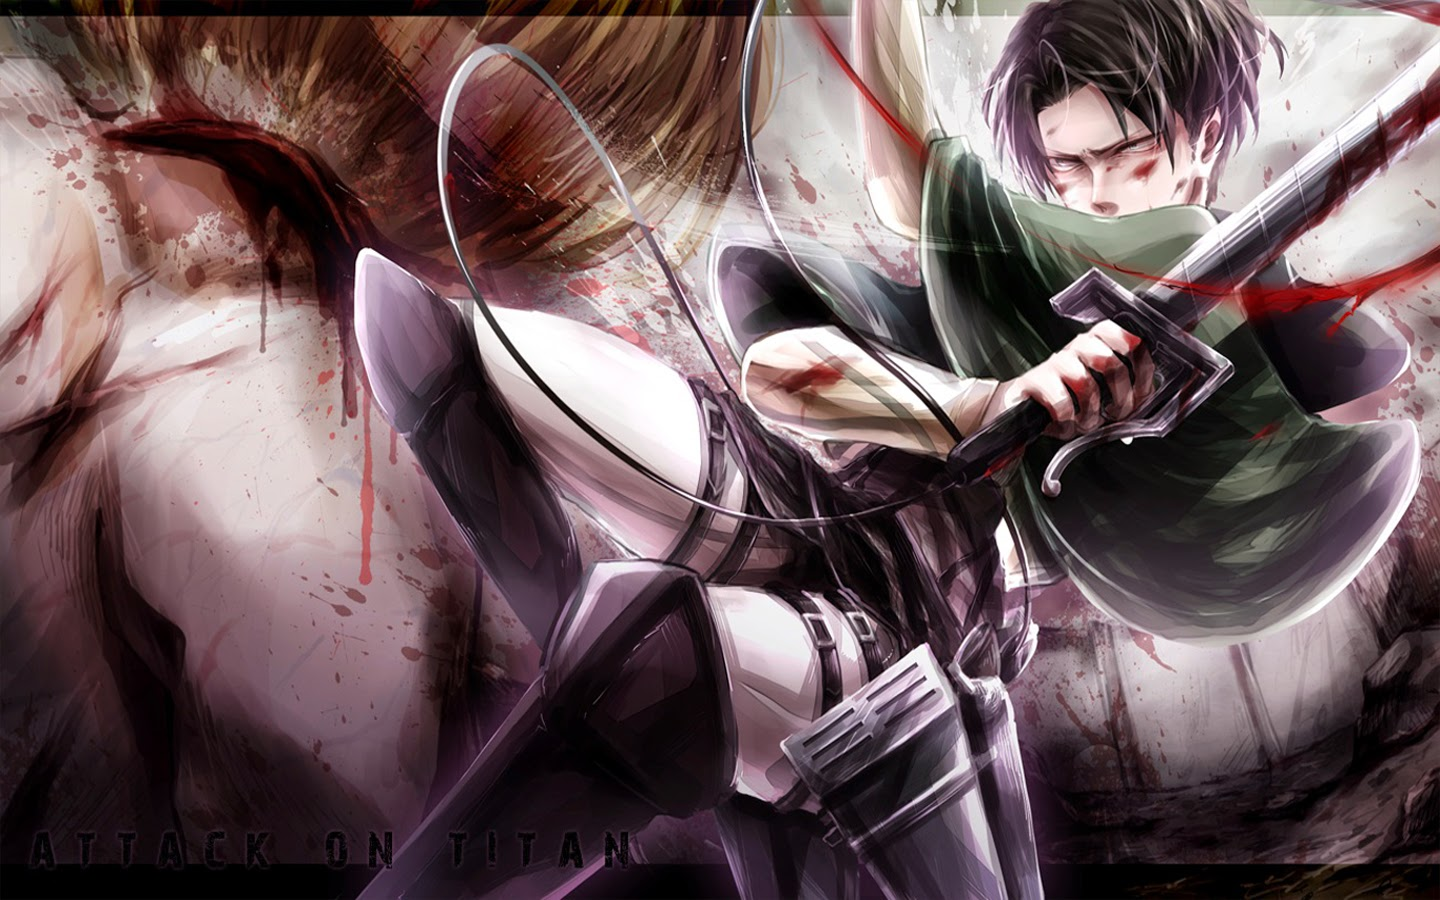 levi attack on titan shingeki no kyojin anime hd wallpaper 1440x900 60 1440x900